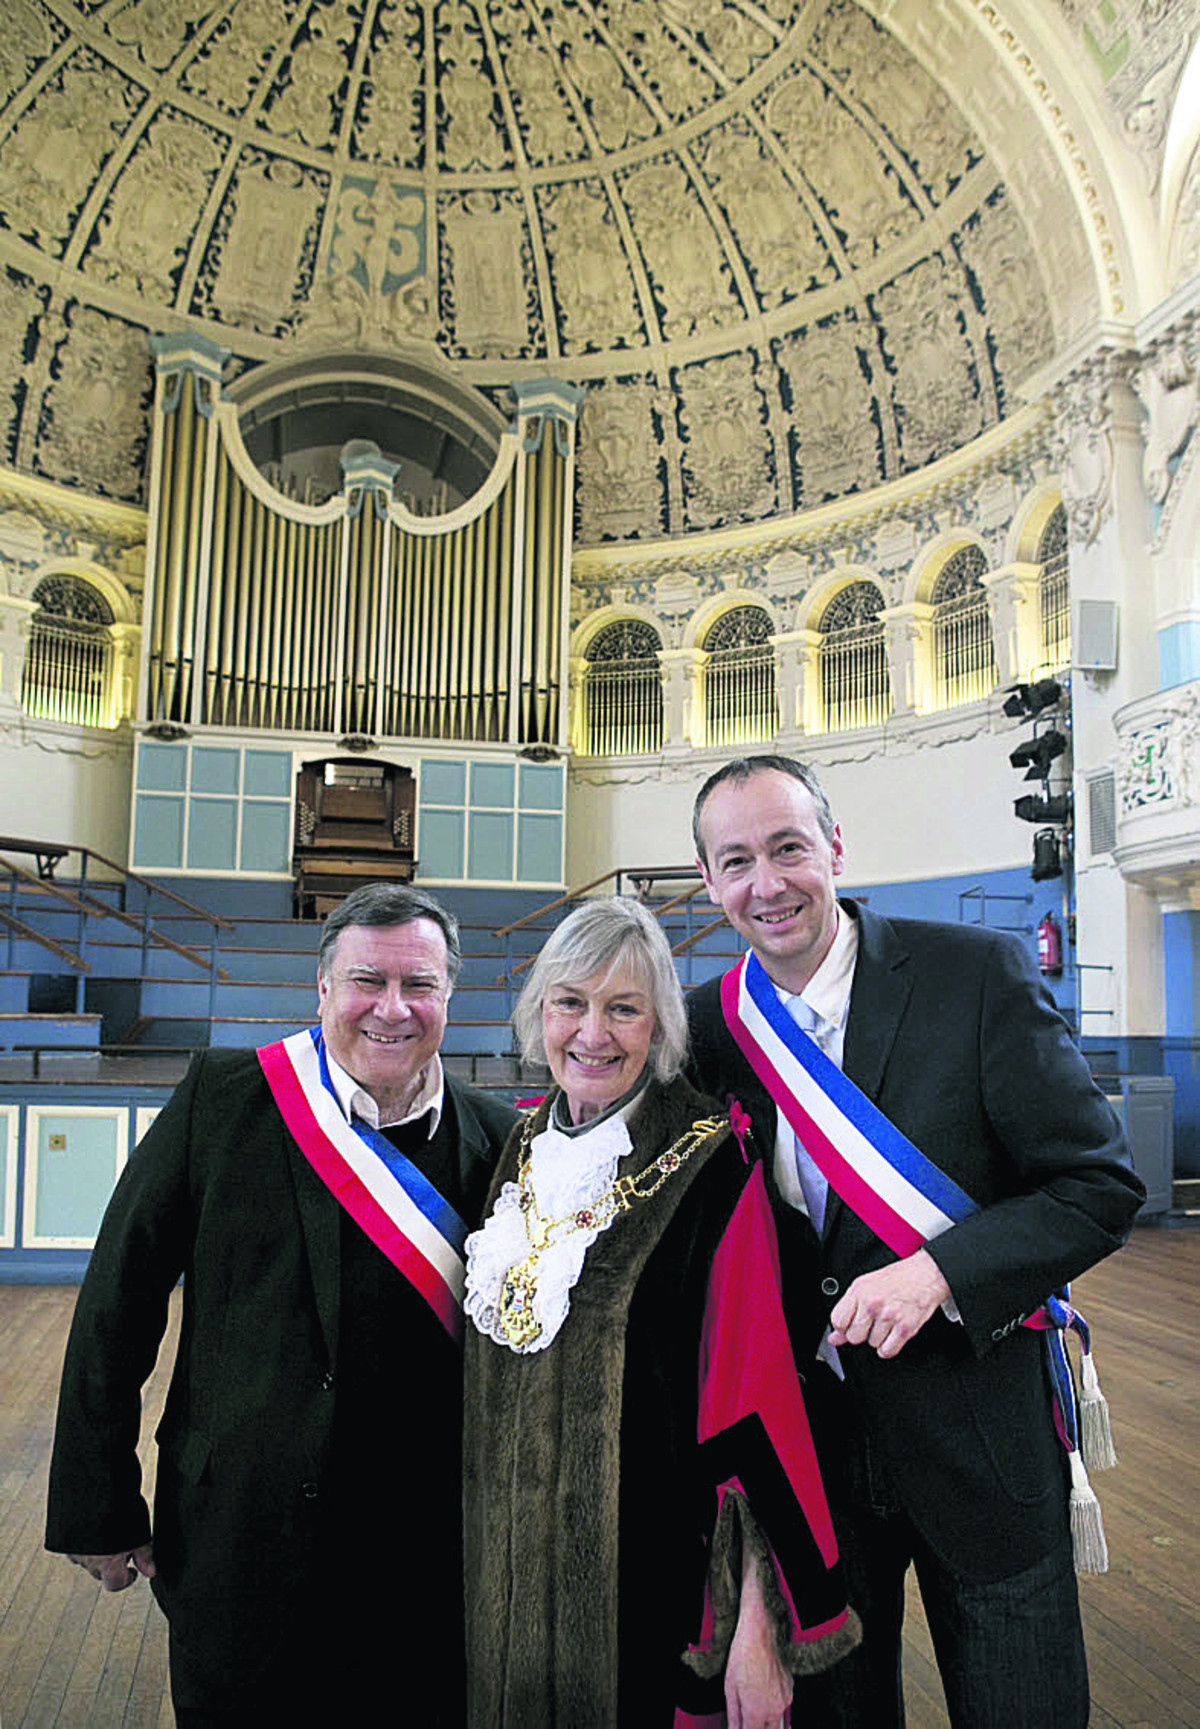 Bernard Macret, left, and Pascal Clouaire with Oxford Lord Mayor Dee Sinclair